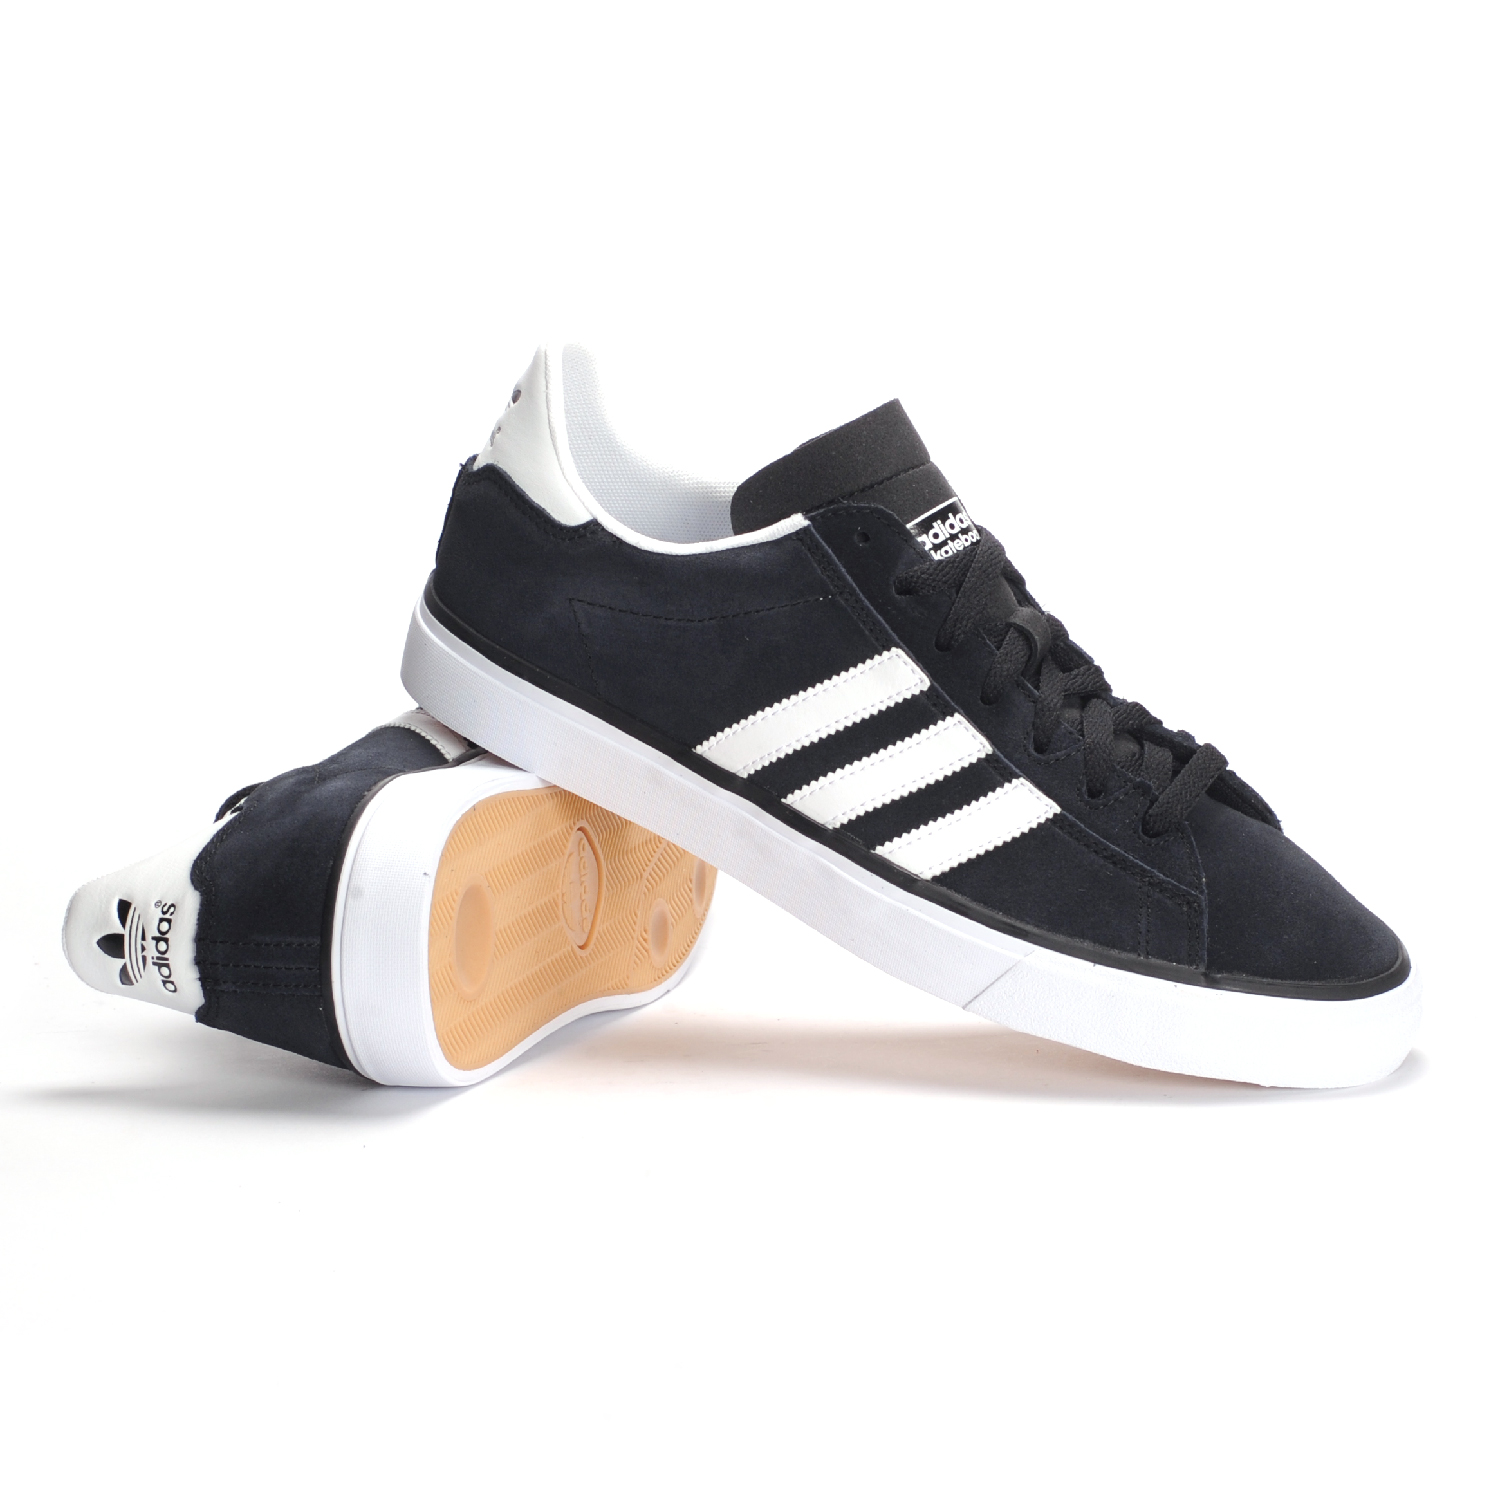 adidas campus vulc skate shoes black white